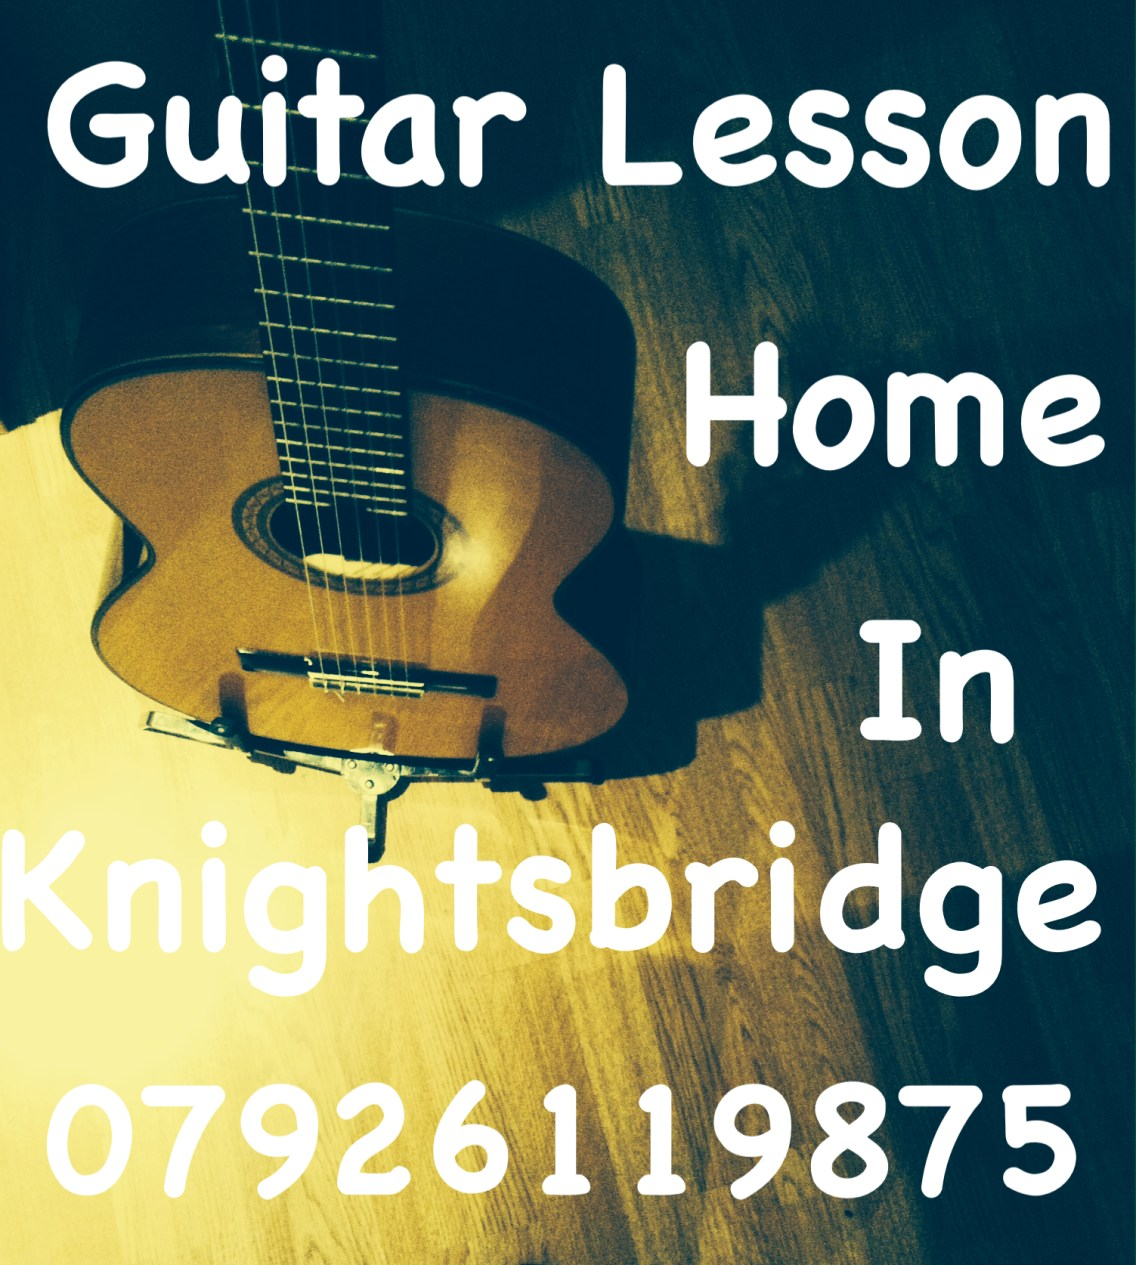 Learn Guitar in Knightsbridge - Guitar Lesson home in Knightsbridge - Beginners to Advanced Guitar Lesson in Knightsbridge